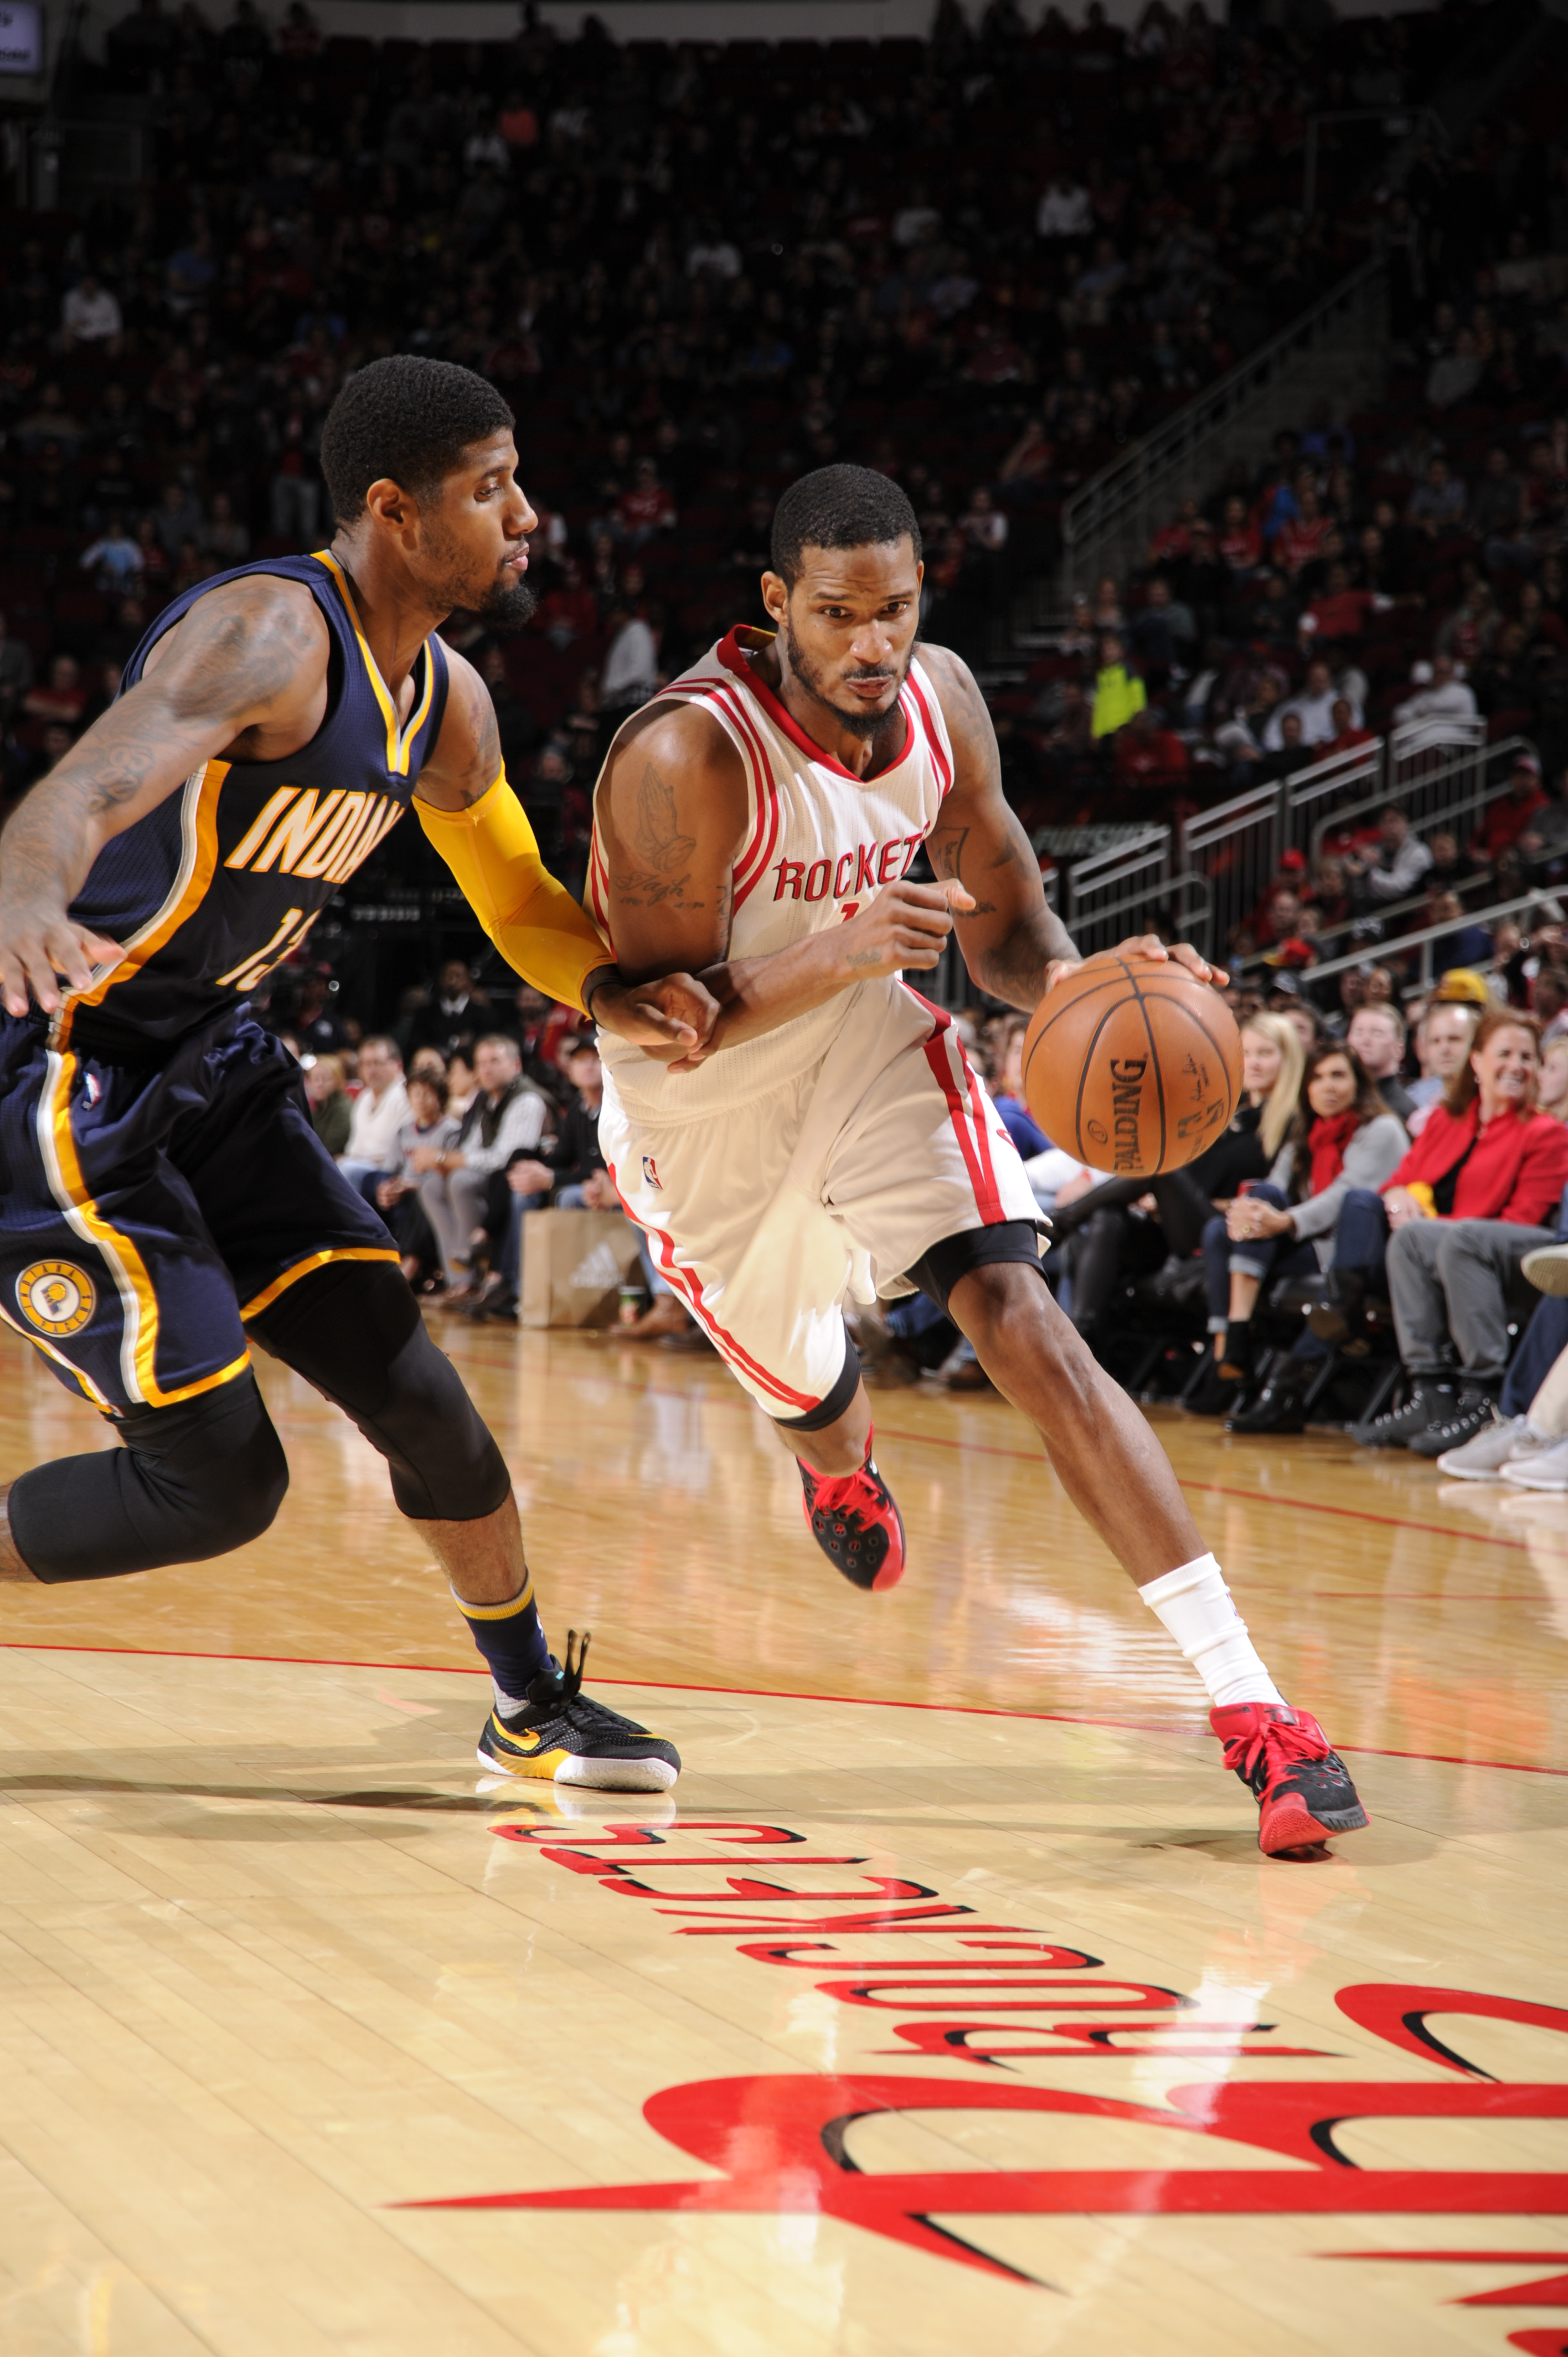 HOUSTON, TX - JANUARY 10: Trevor Ariza #1 of the Houston Rockets drives to the basket against the Indiana Pacers on January 10, 2016 at the Toyota Center in Houston, Texas. (Photo by Bill Baptist/NBAE via Getty Images)